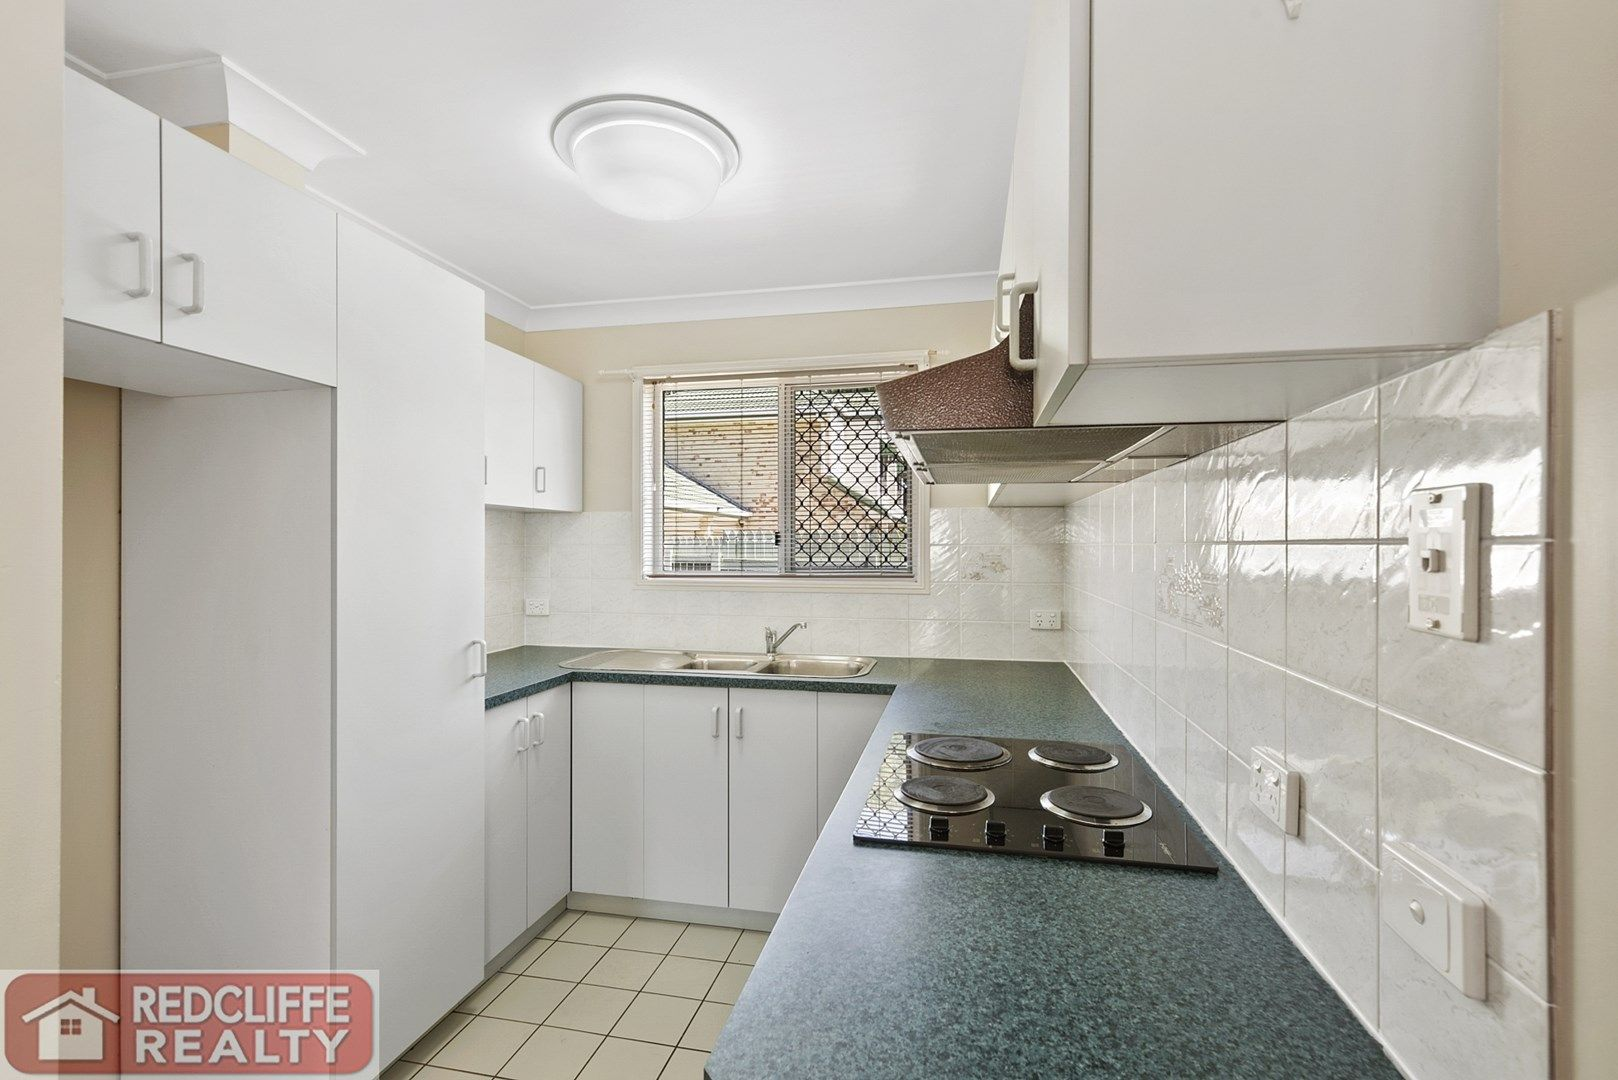 Unit 2 16 Grant Street, Redcliffe QLD 4020, Image 2